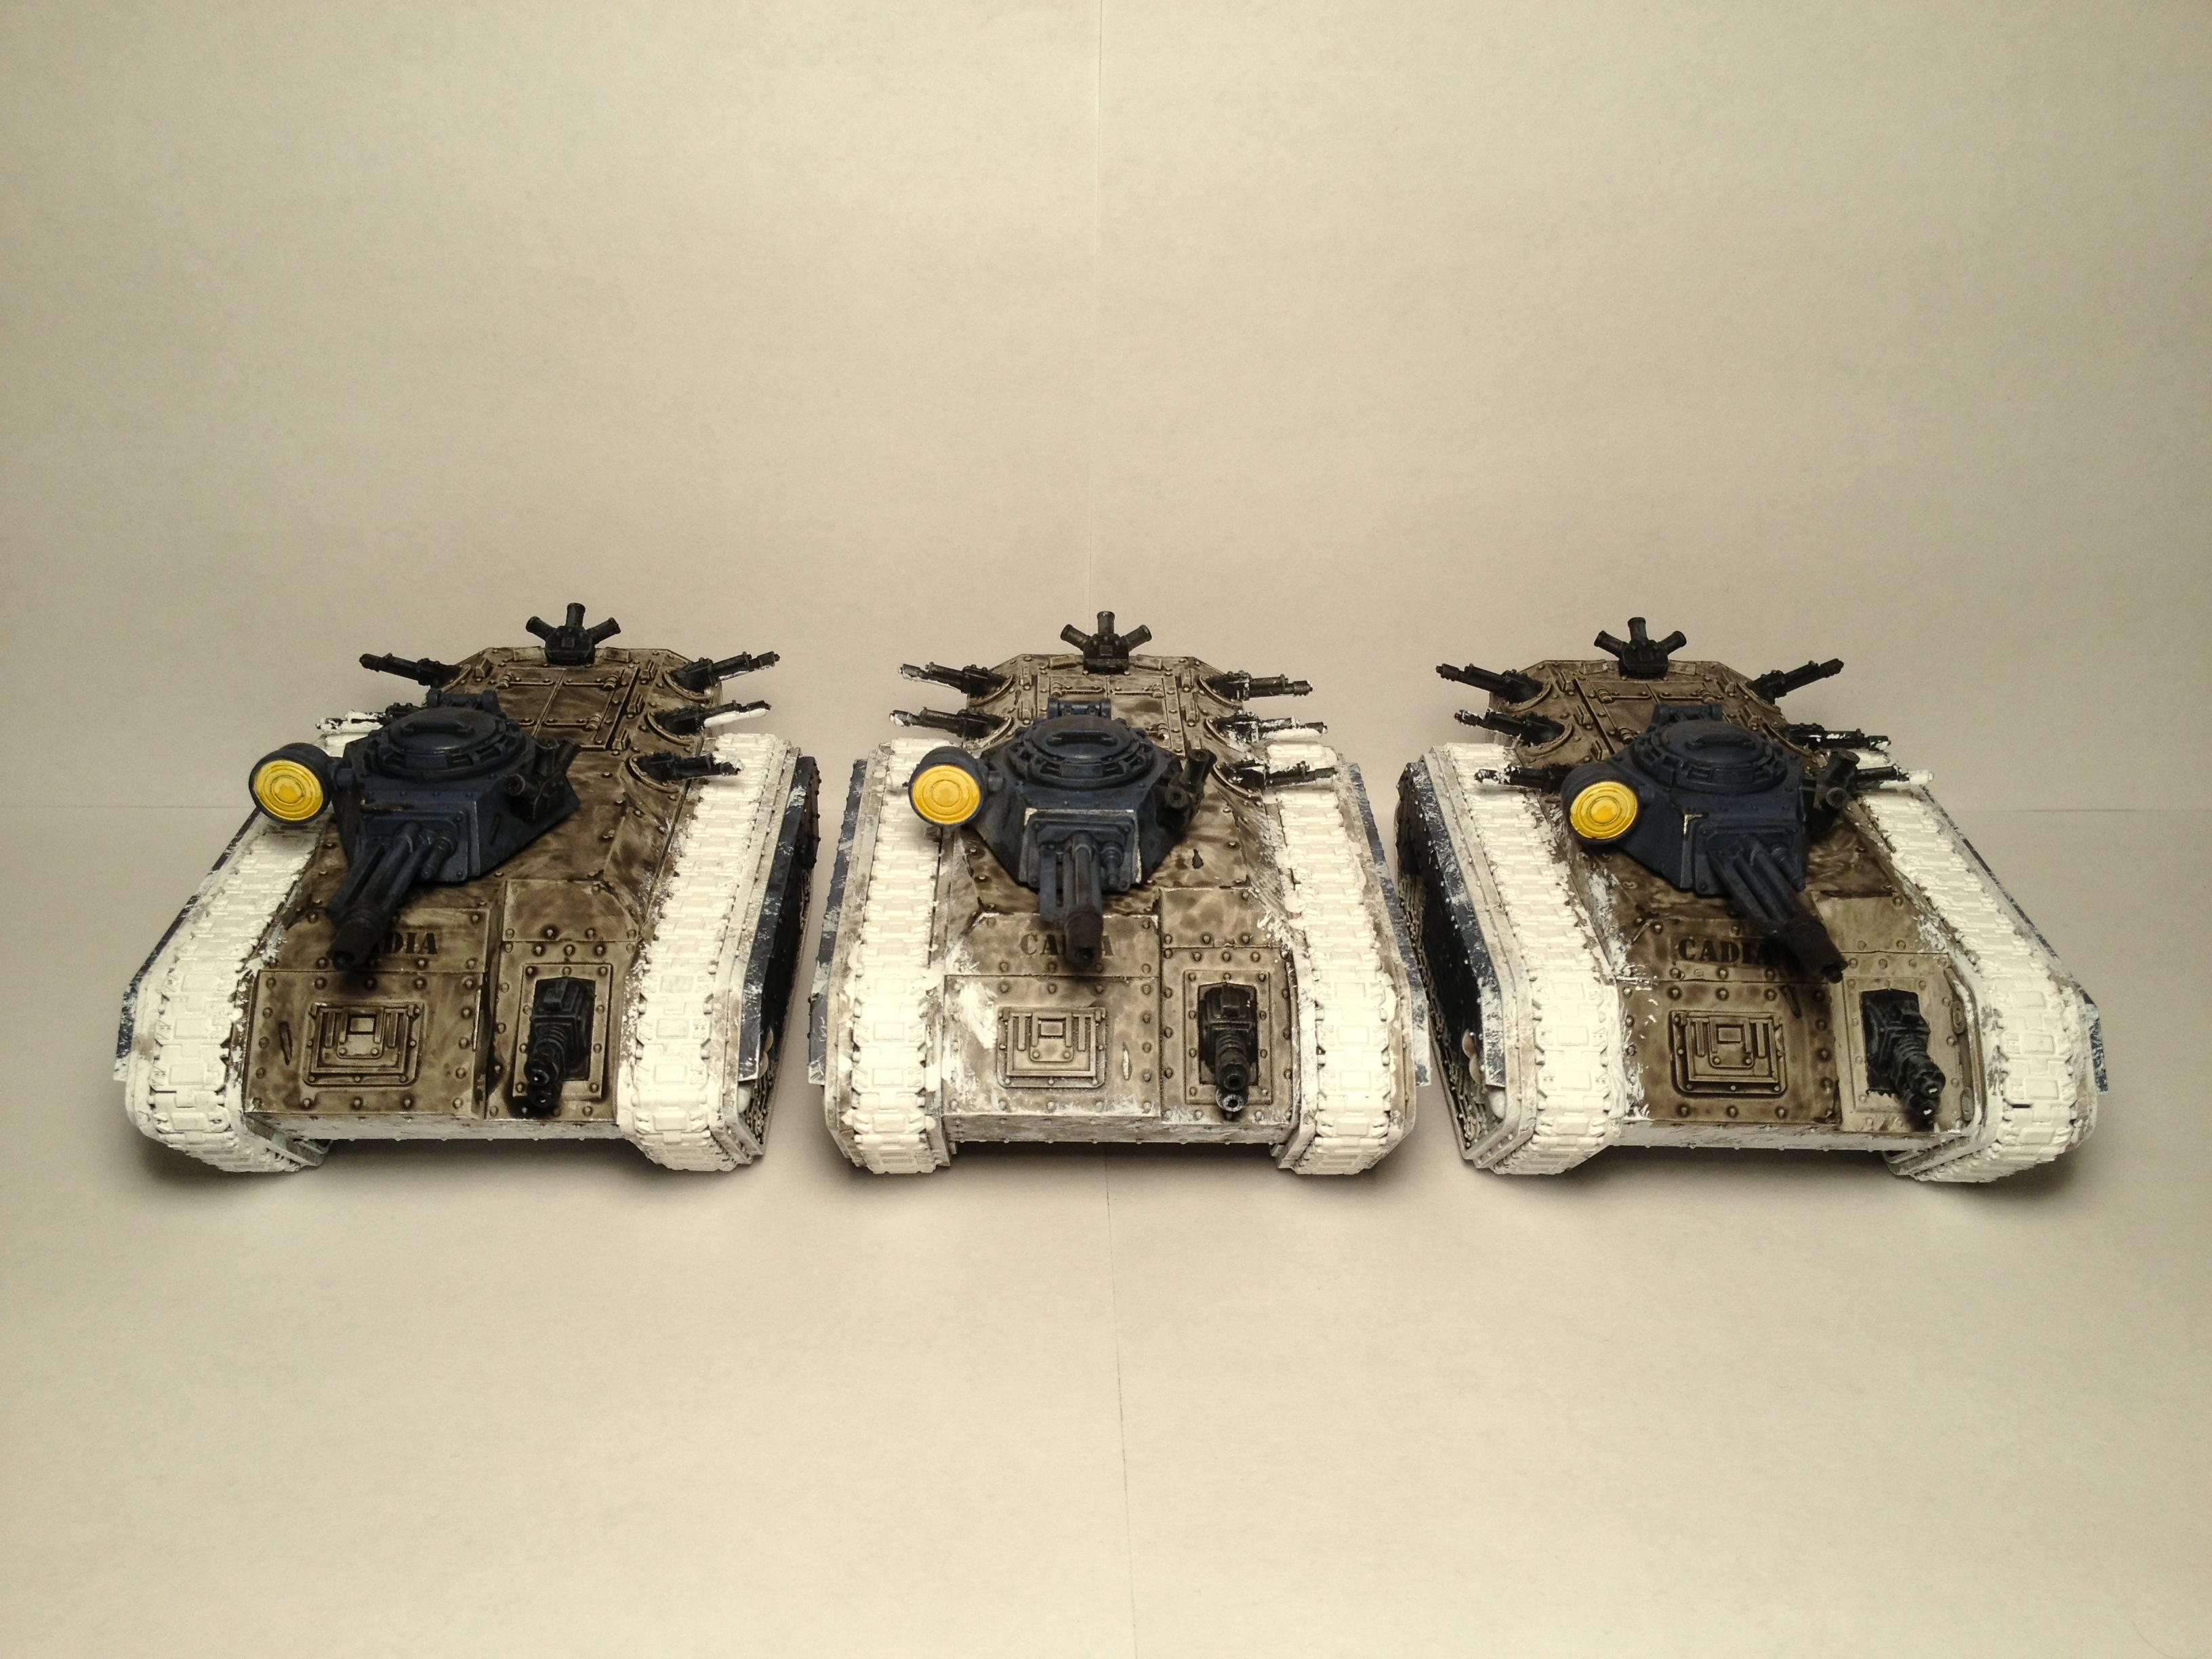 Imperial Guard, Imperial Guard Chimeras